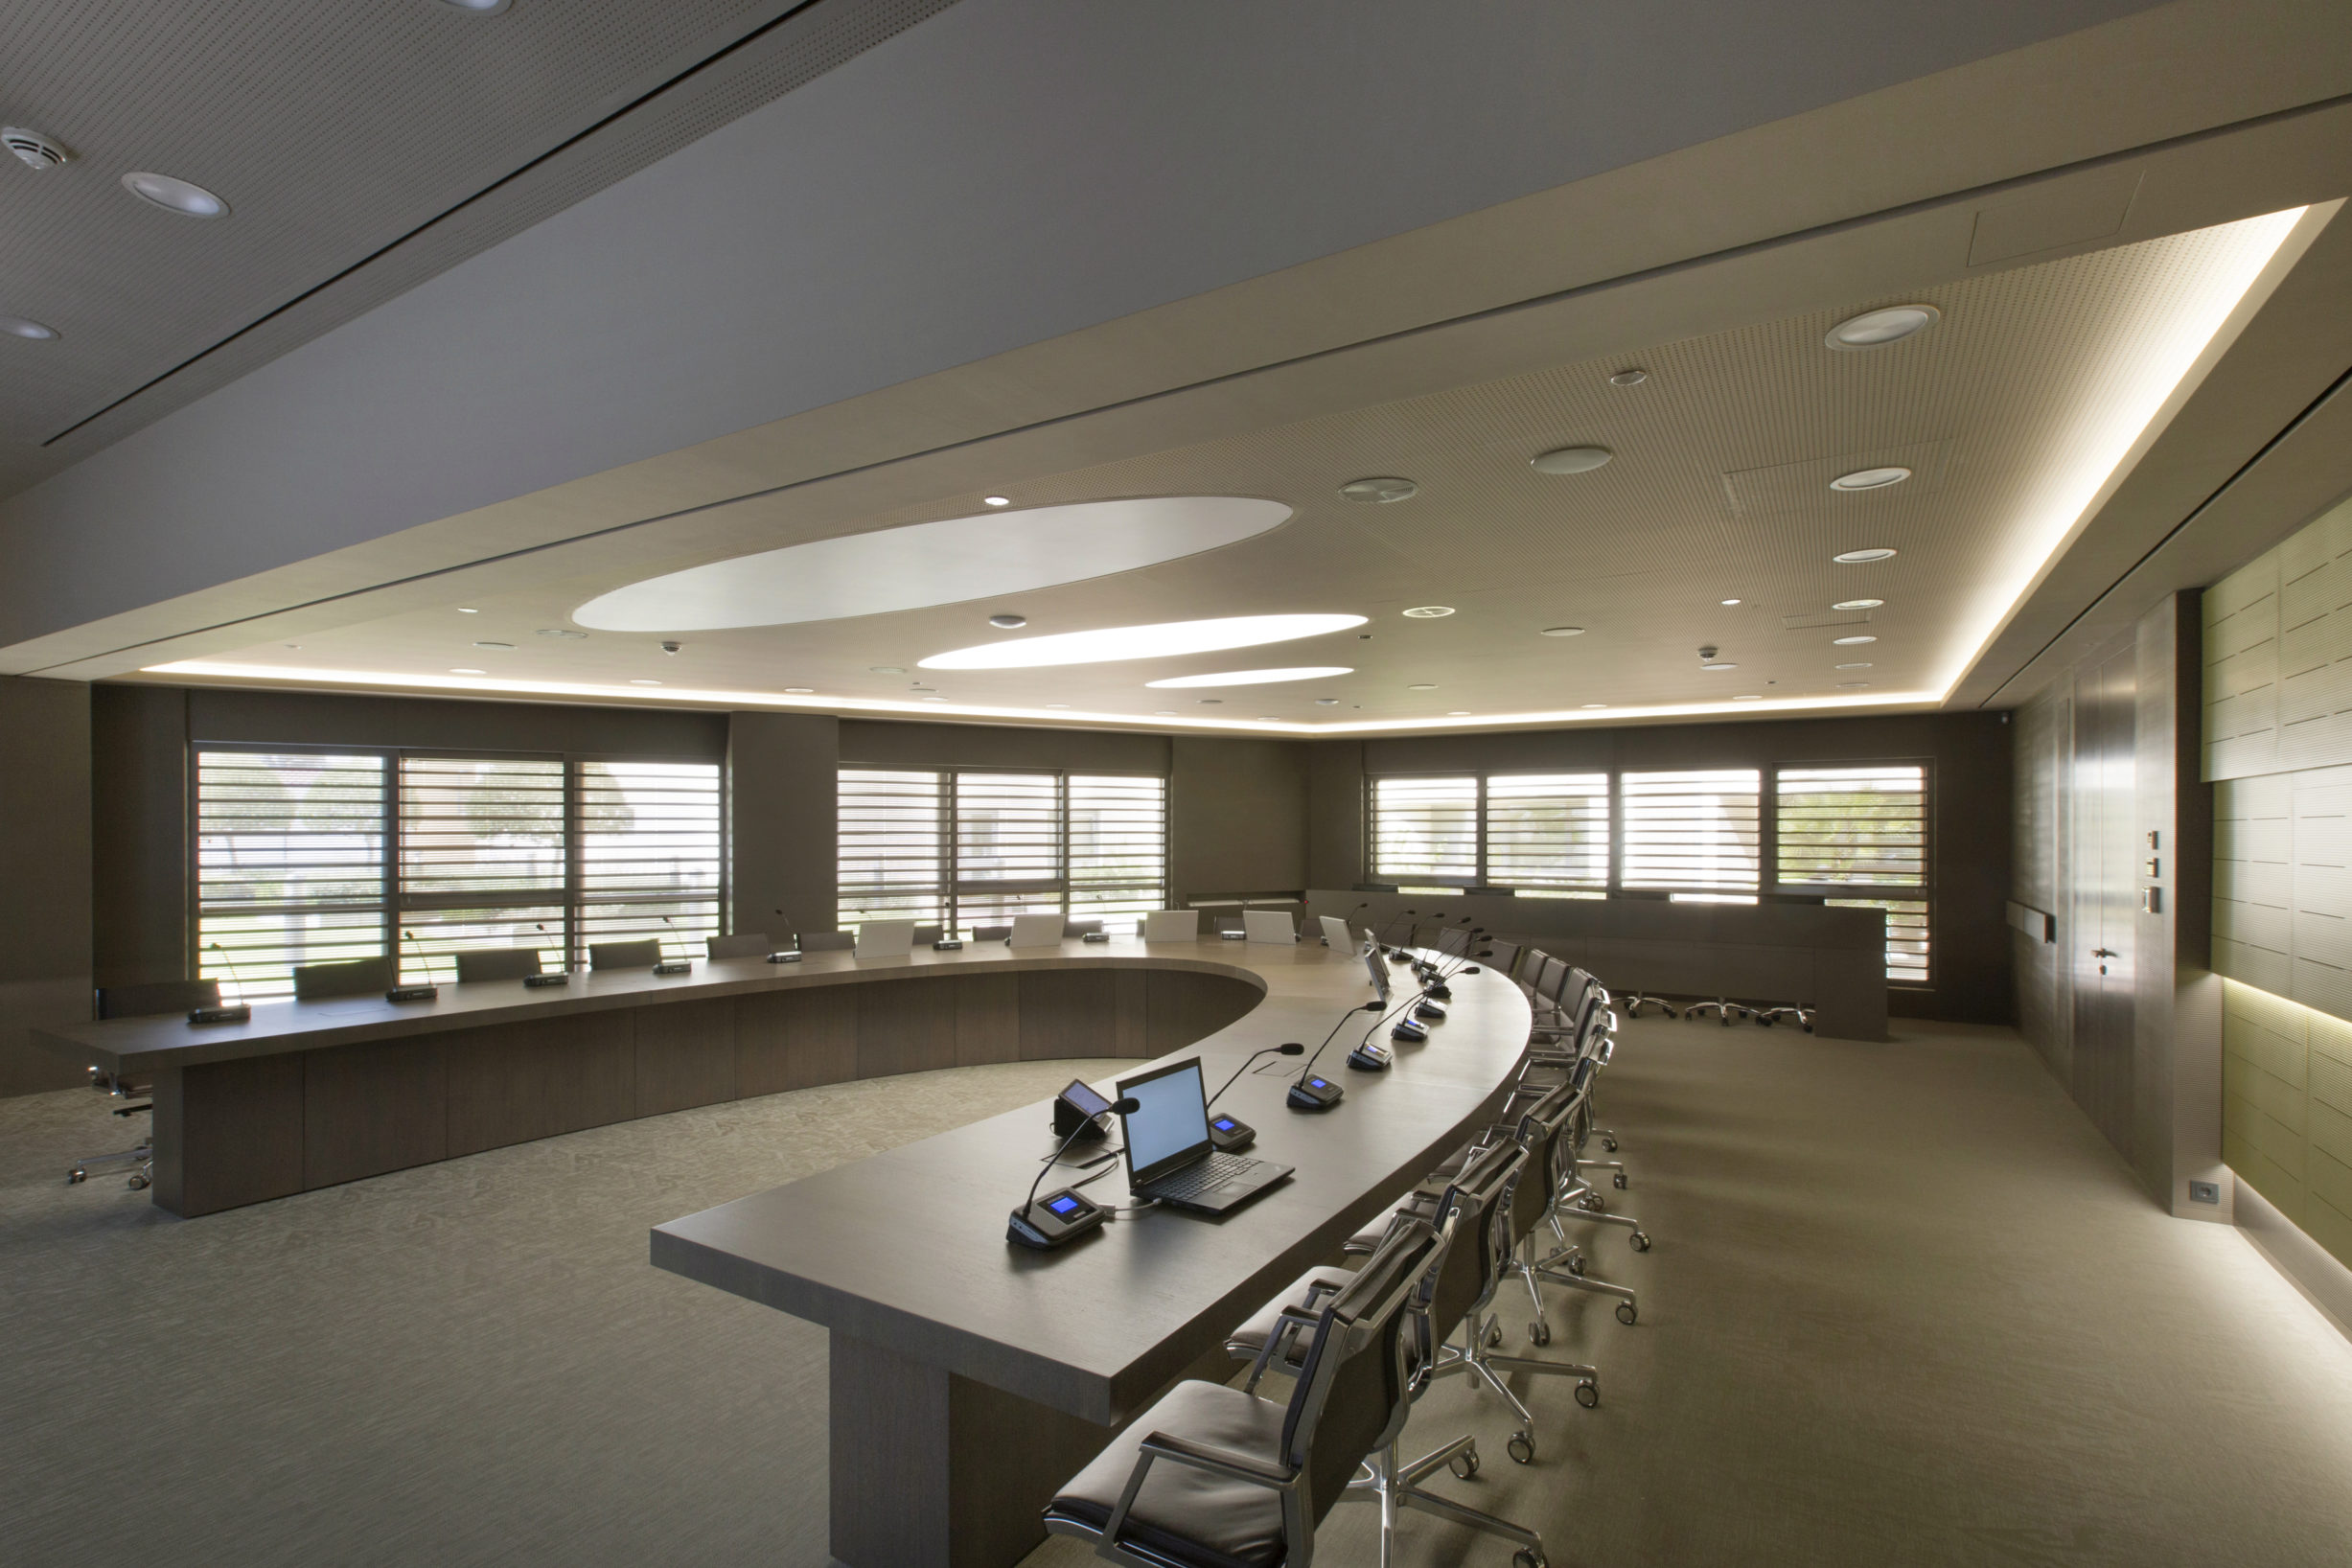 Beautiful new Board Room installation in Athens, Greece!